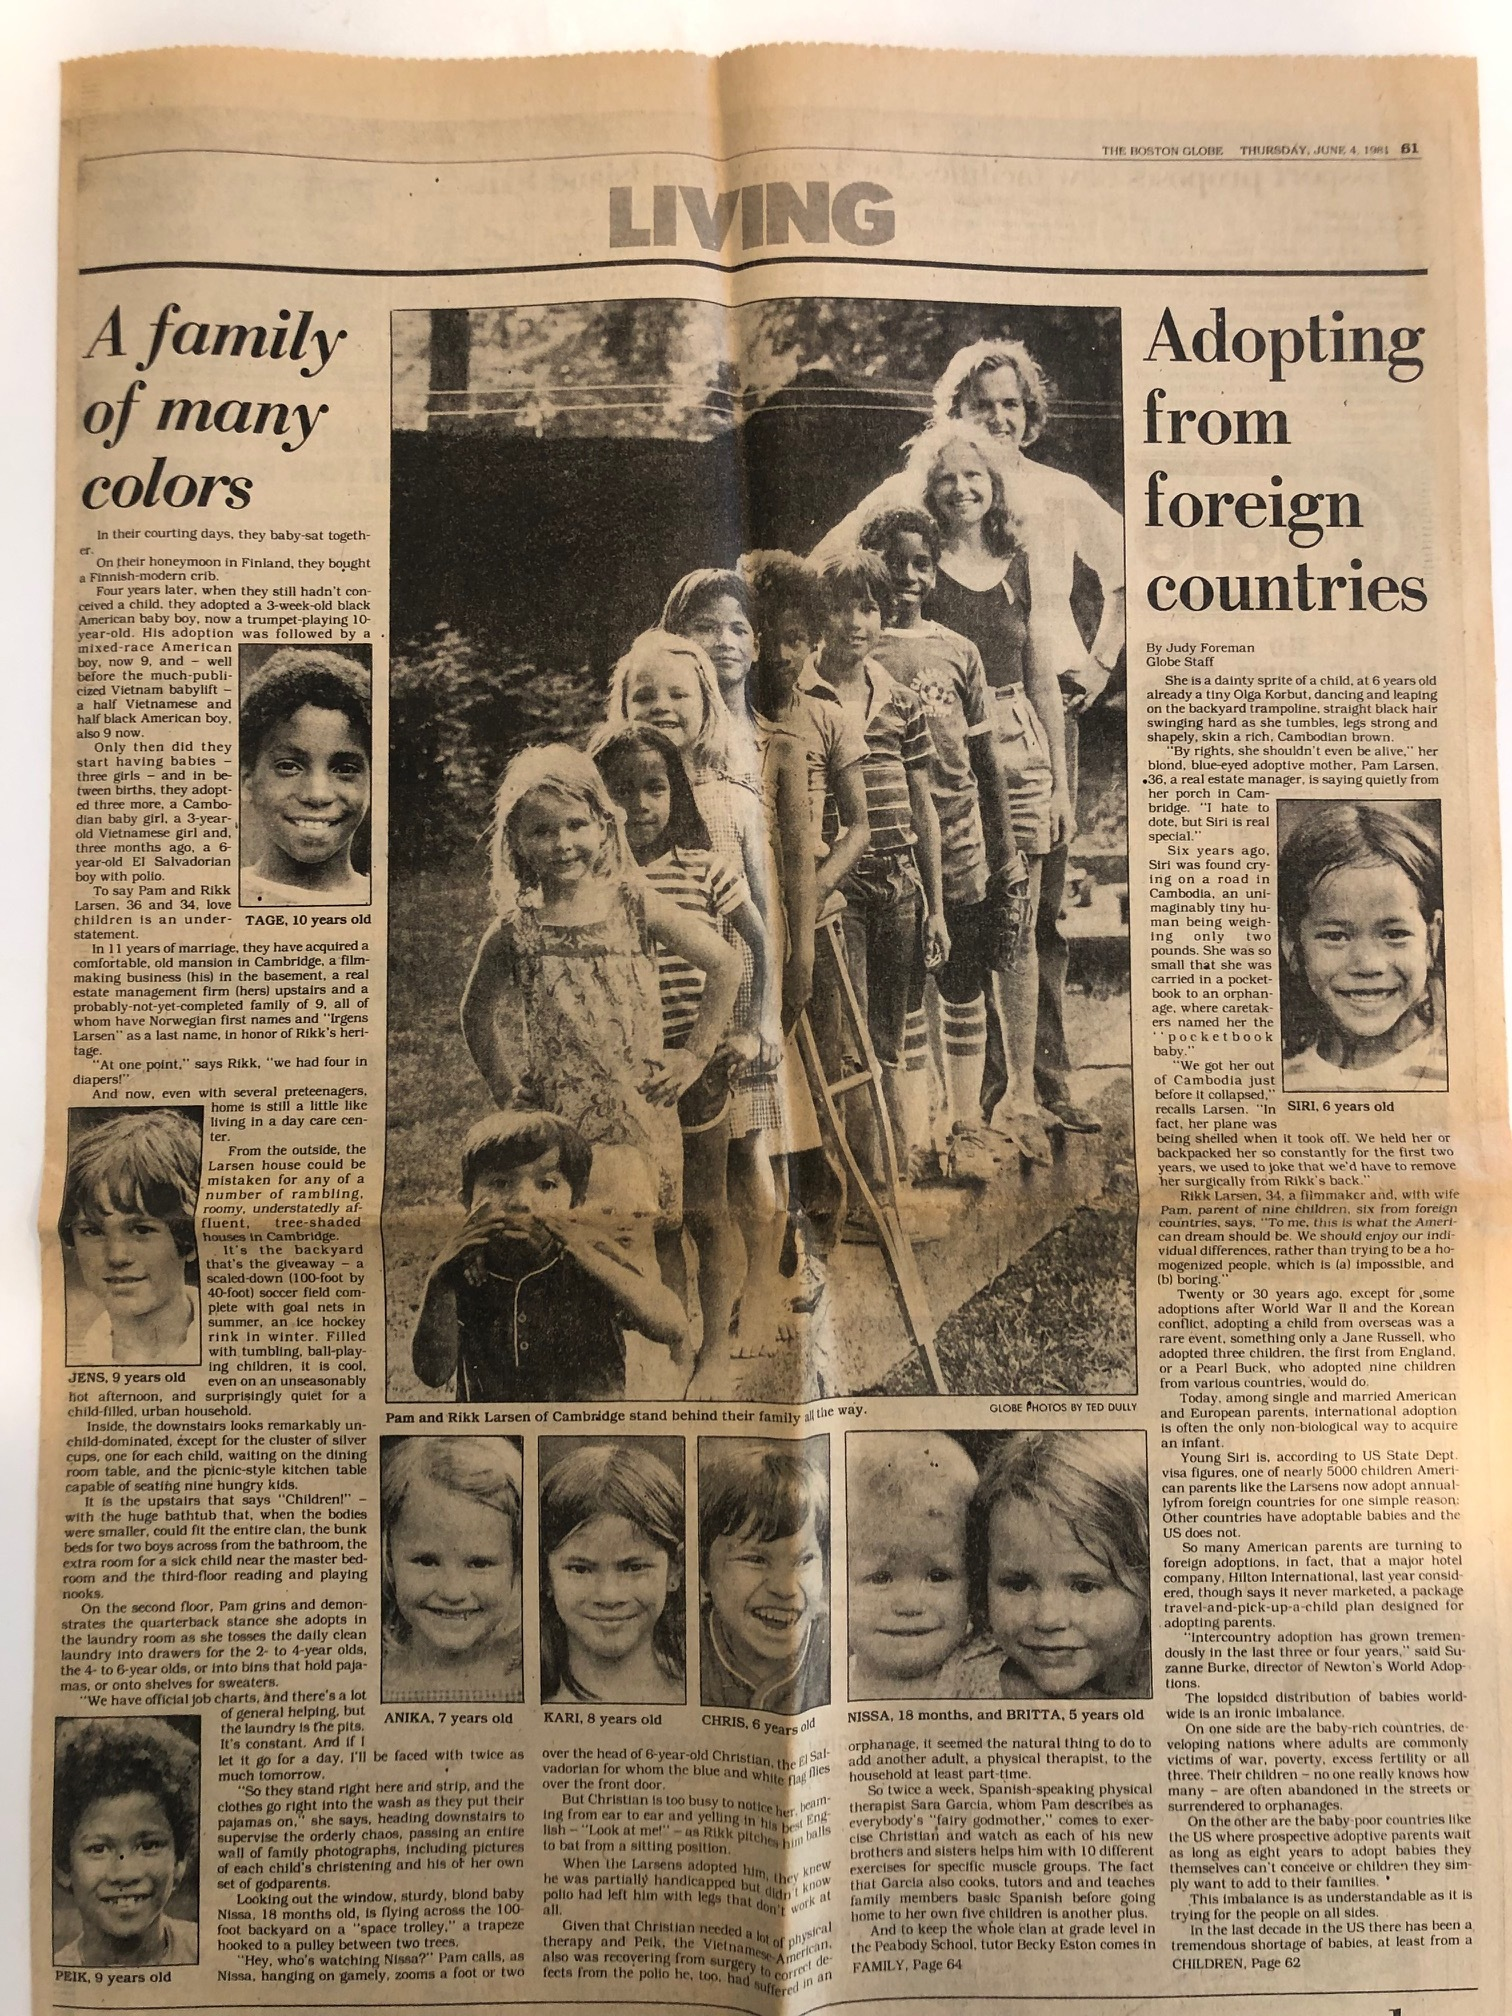 """The Boston Globe ~ June 4, 1981 """"In their courting days, they baby-sat together. On their honeymoon in Finland, they bought a Finnish-modern crib. Four years later, when they still hadn't conceived a child, they adopted a 3-week-old black American baby boy, now a trumpet-playing 10-year-old…"""""""